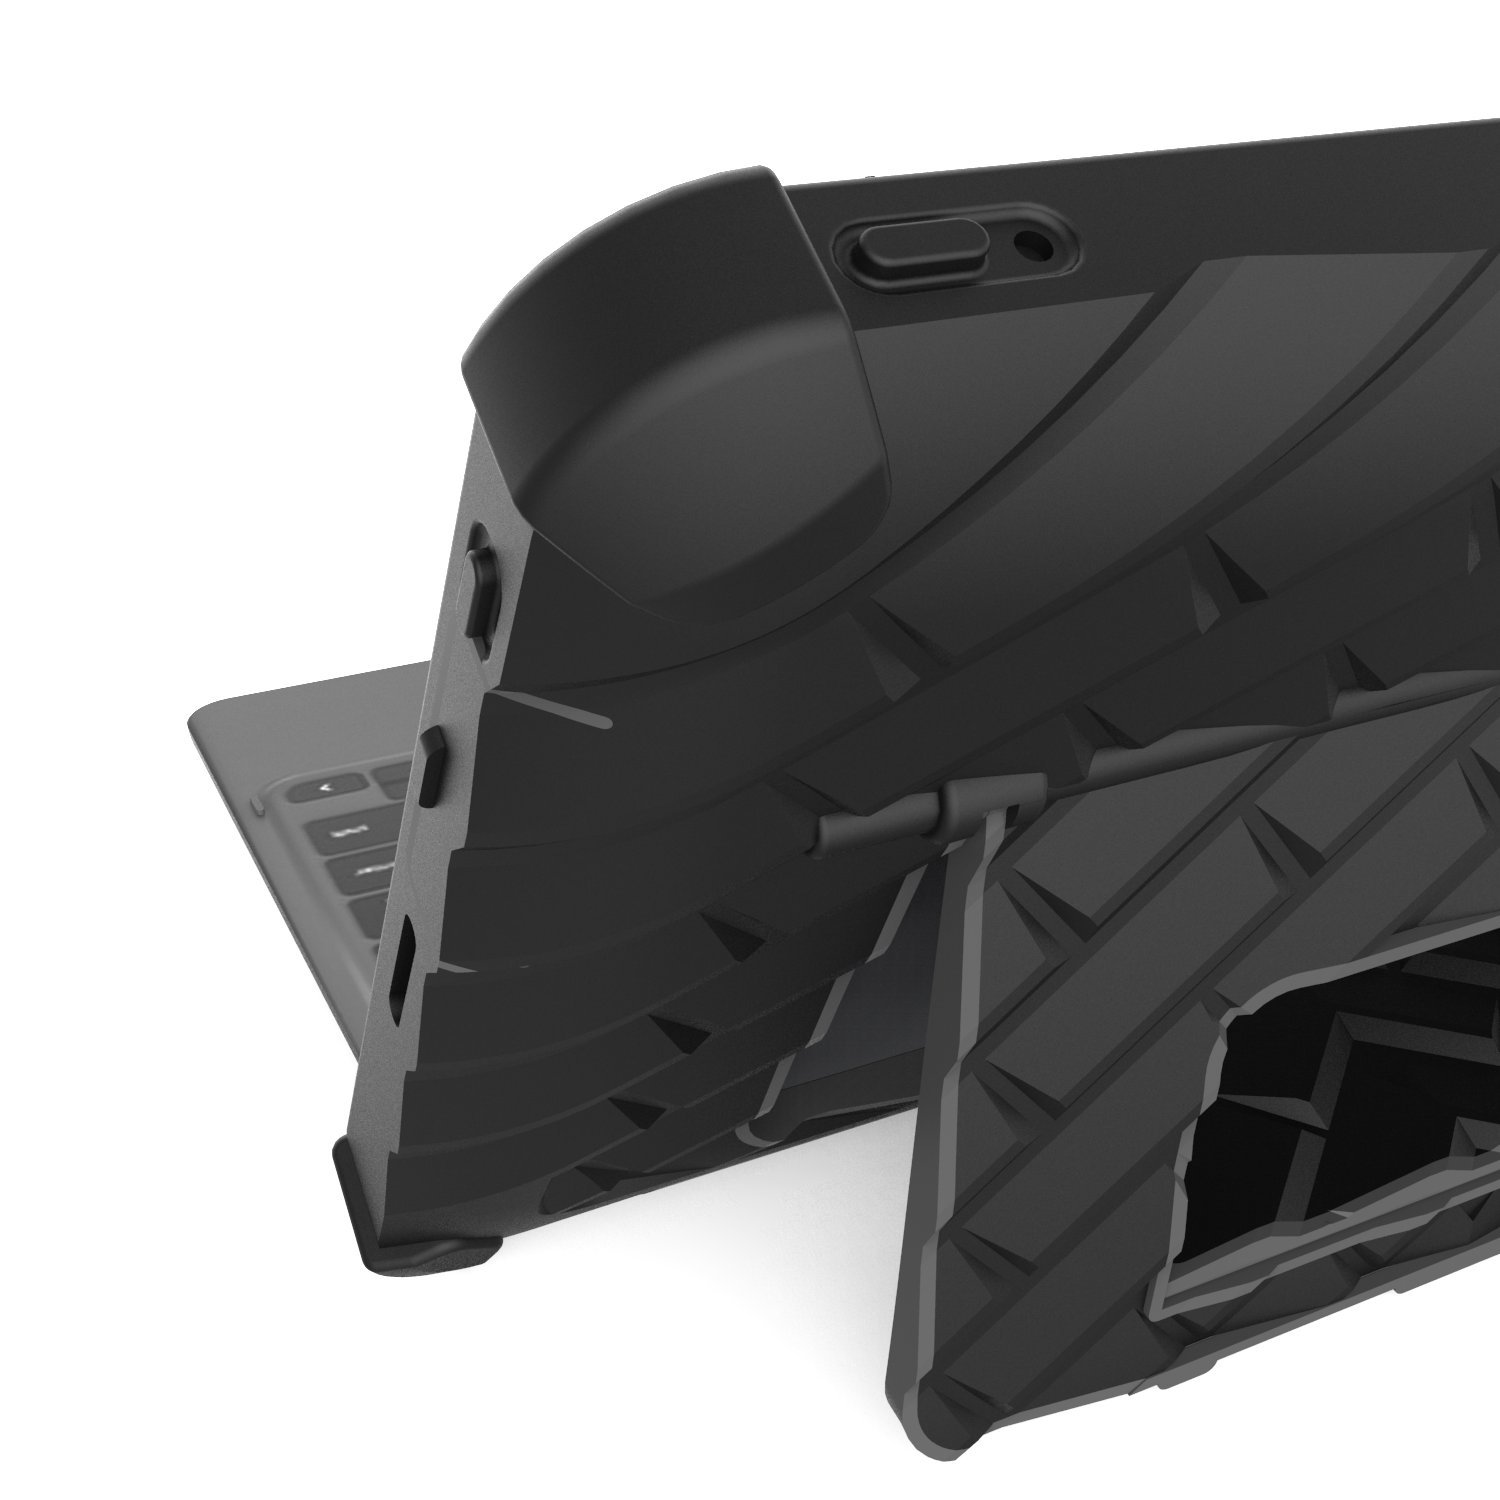 Gumdrop Hideaway Case for Dell Latitude 11'' 5175/5179 2-in-1, Secure Black, Custom Molded Shell, Rugged, Shock Absorbing Laptop Cover with Built-in Stand and Screen Protection Student Business Users by Gumdrop Cases (Image #1)